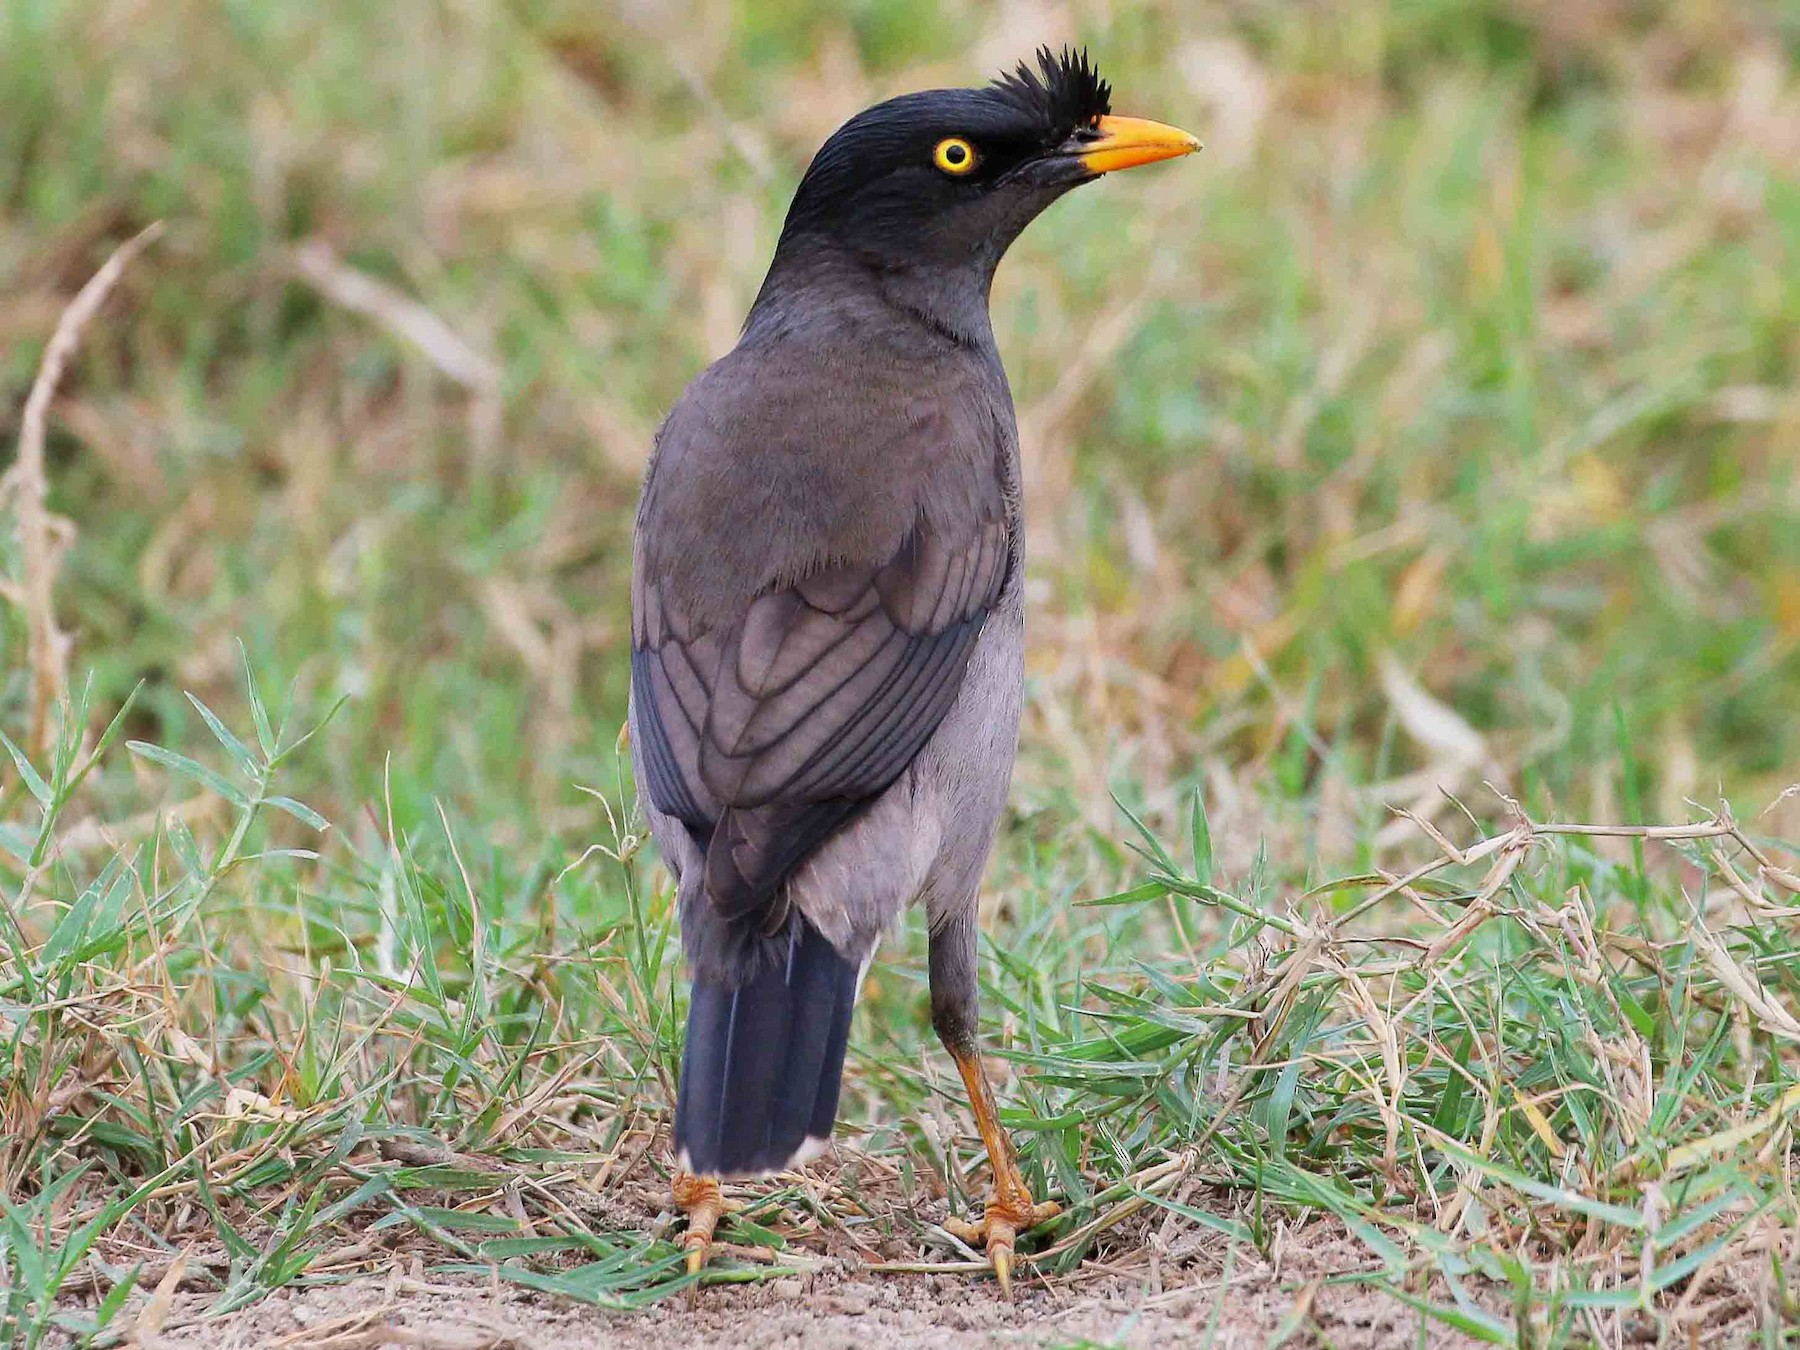 Jungle Myna - Neoh Hor Kee